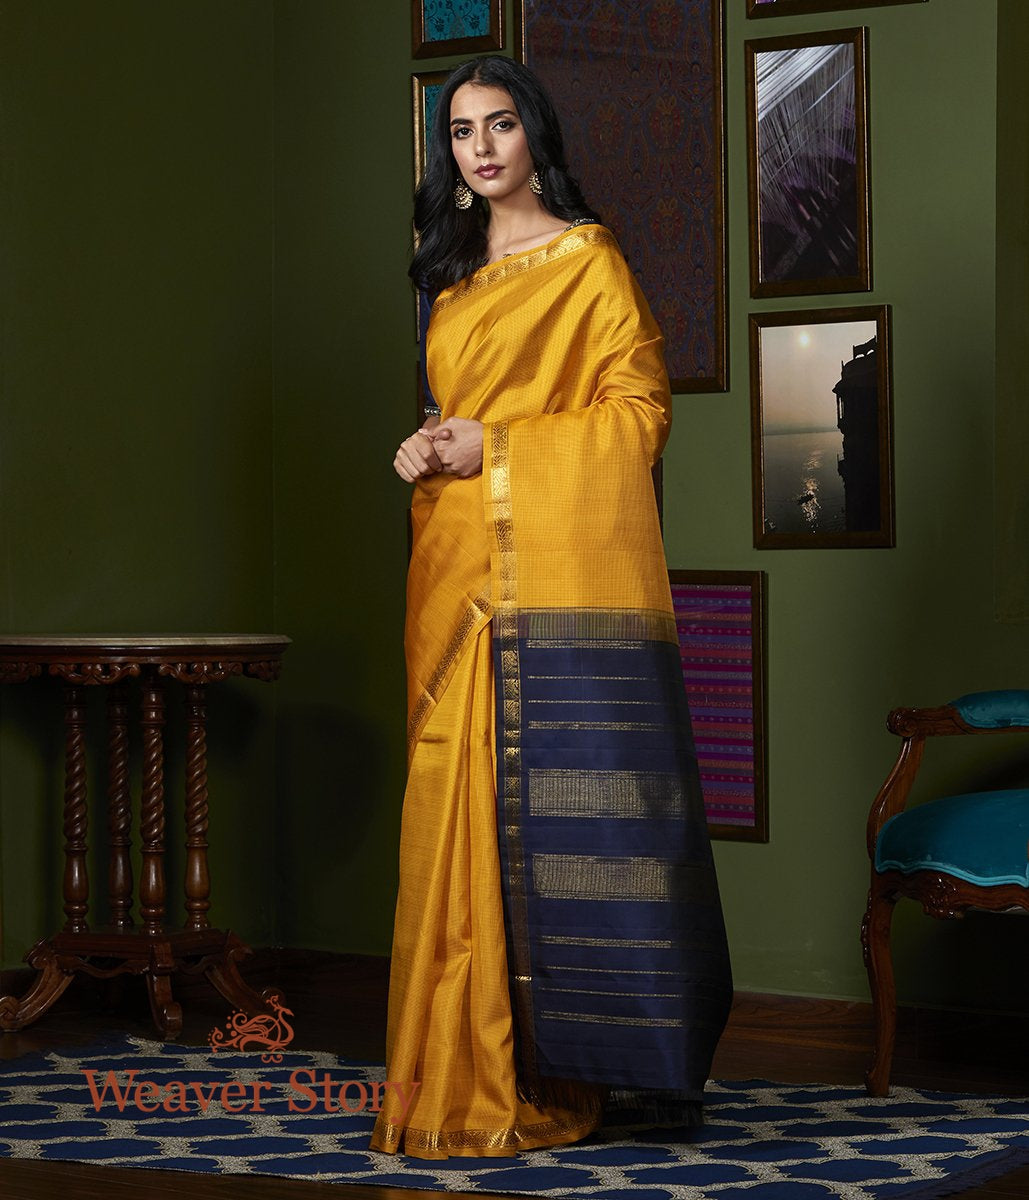 Handwoven Mustard Self Checks Kanjivaram Saree with Navy Blue Palla